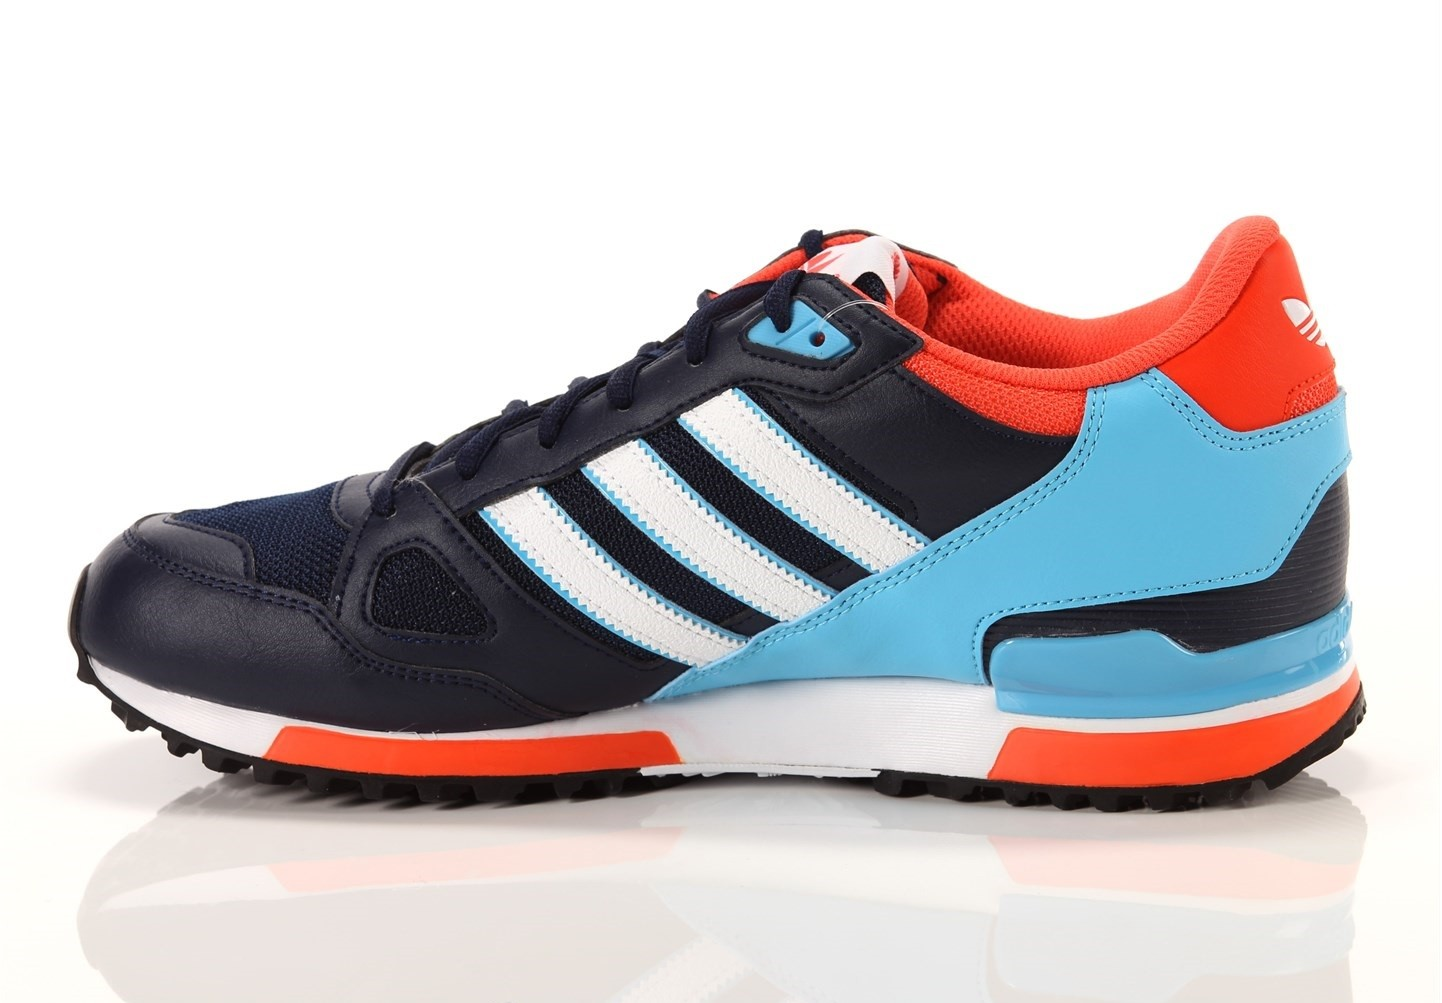 zx 750 s79194 60% di sconto sglabs.it